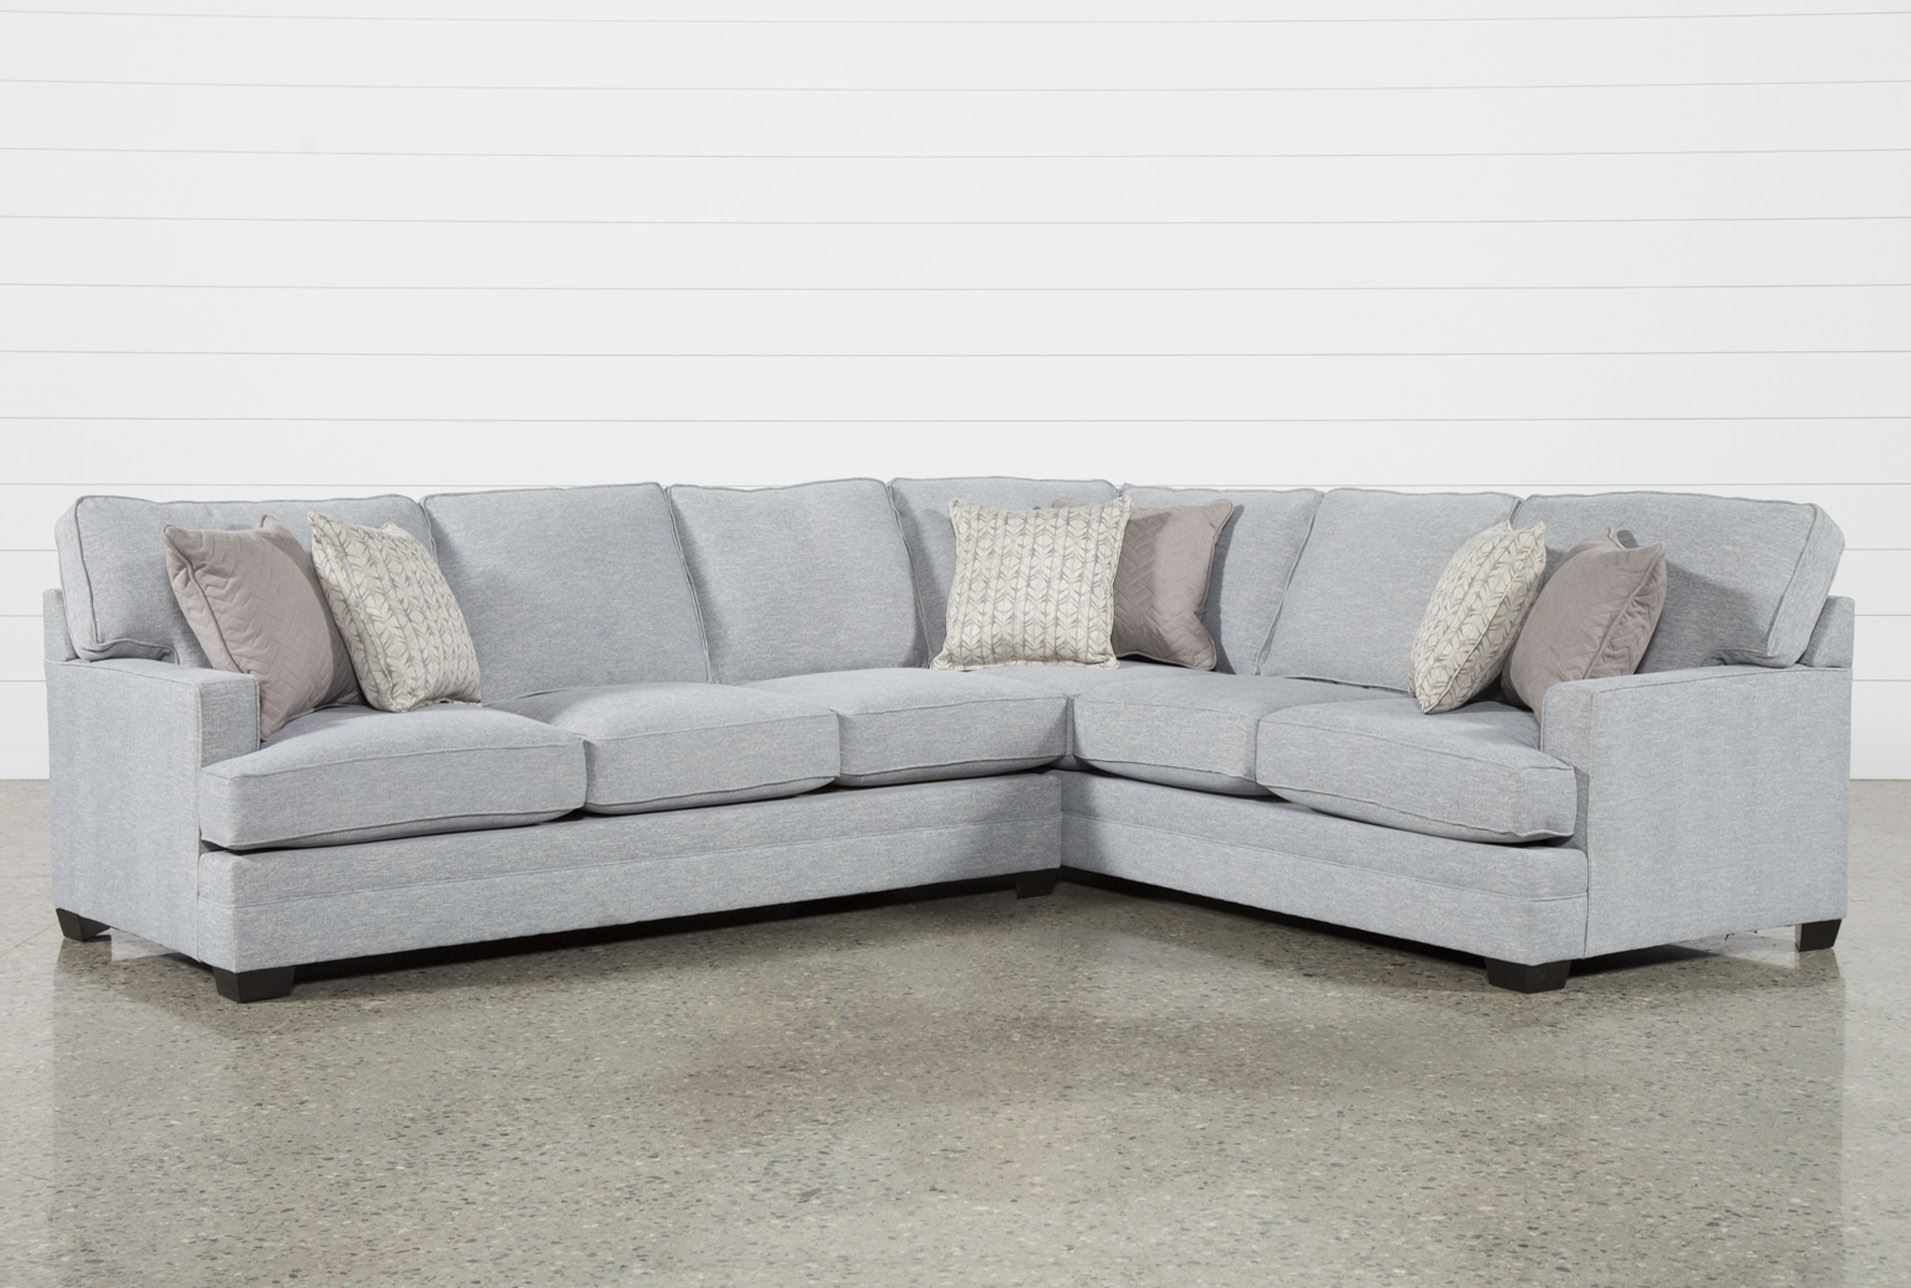 Josephine 2 Piece Sectional W/laf Sofa | Decorating And Interiors With Regard To Kerri 2 Piece Sectionals With Laf Chaise (Photo 15 of 25)